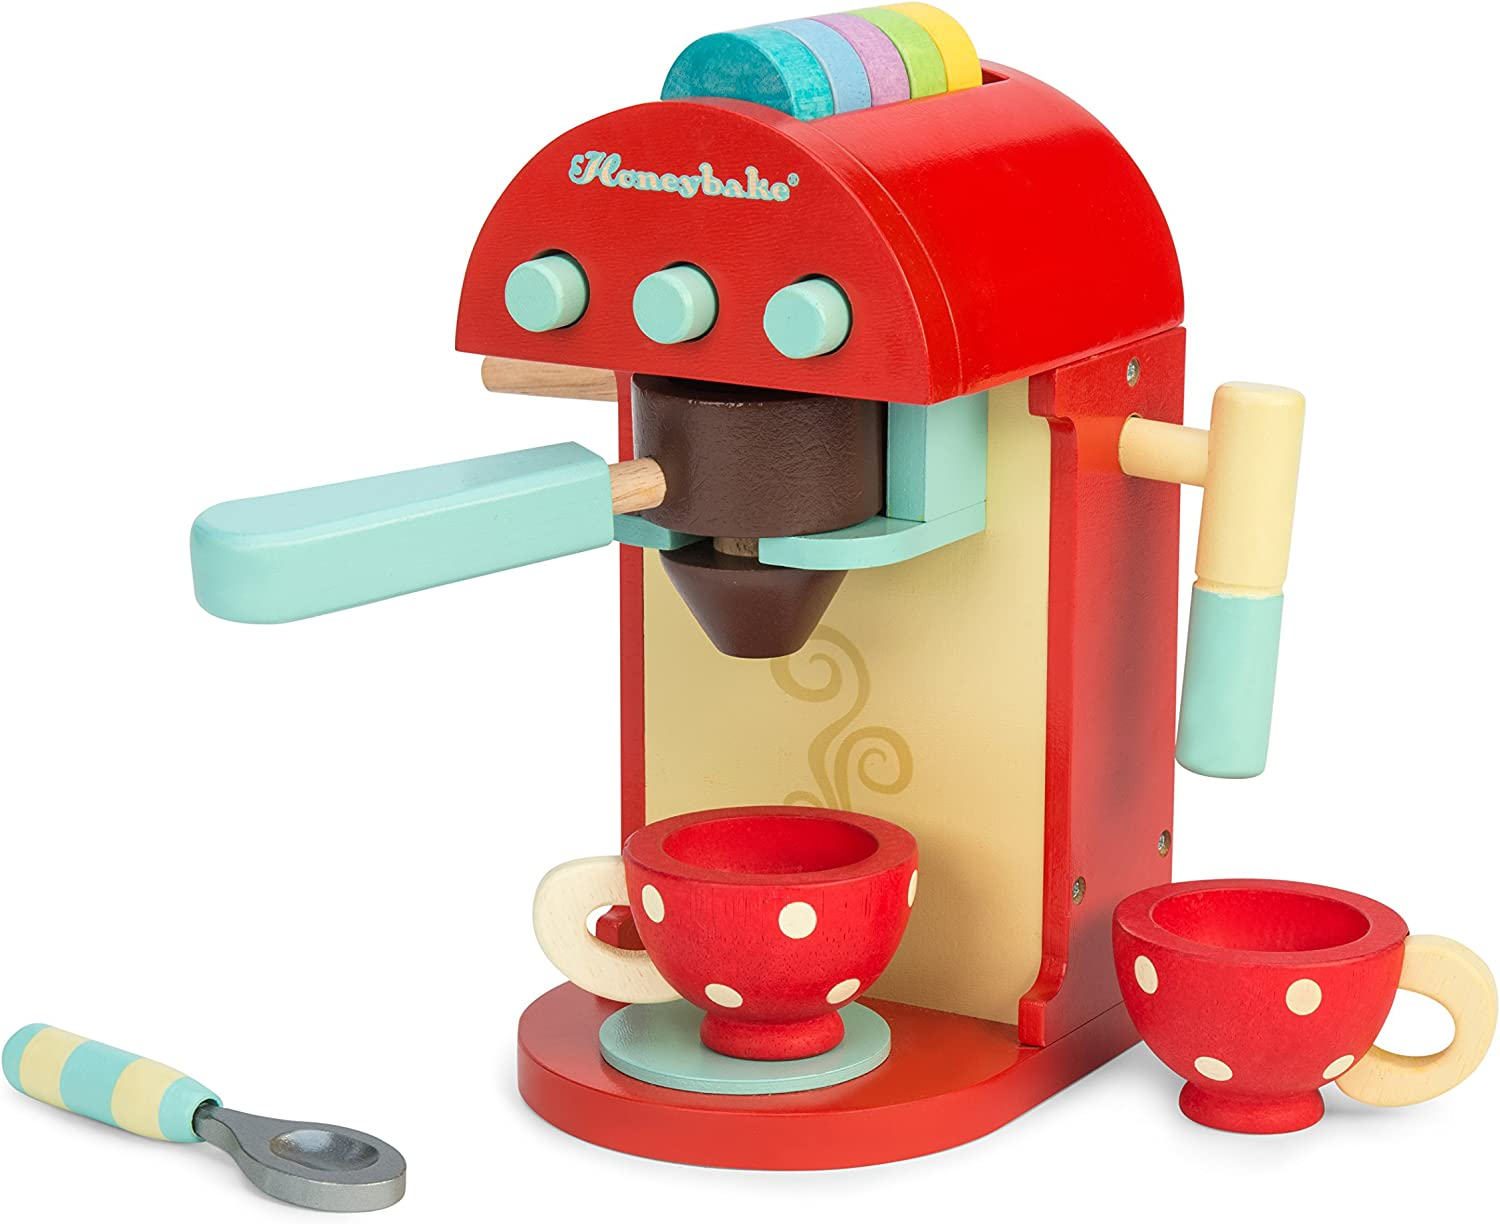 Le Toy Van Honeybake Collection-Cafe Machine Premium Wooden Toys for Kids Ages 3 Years & Up